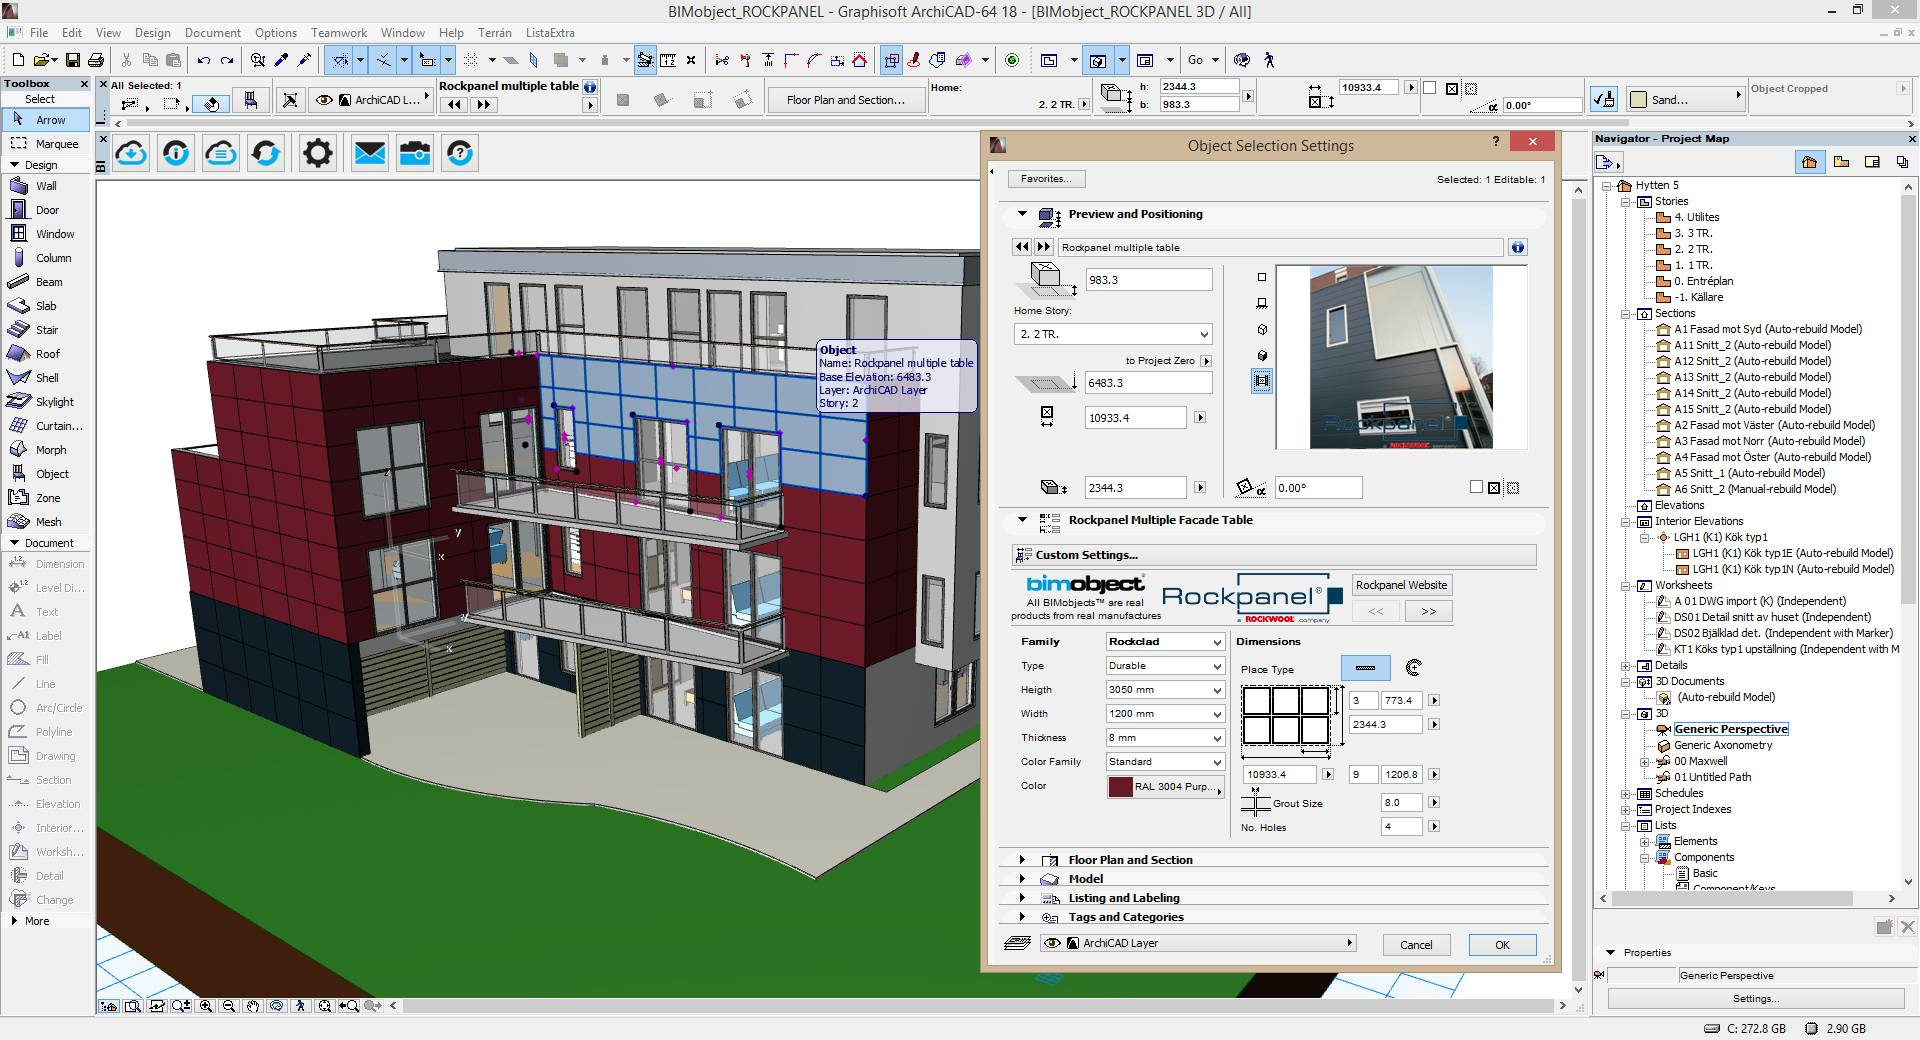 BIM data files for all ROCKPANEL® façade panels